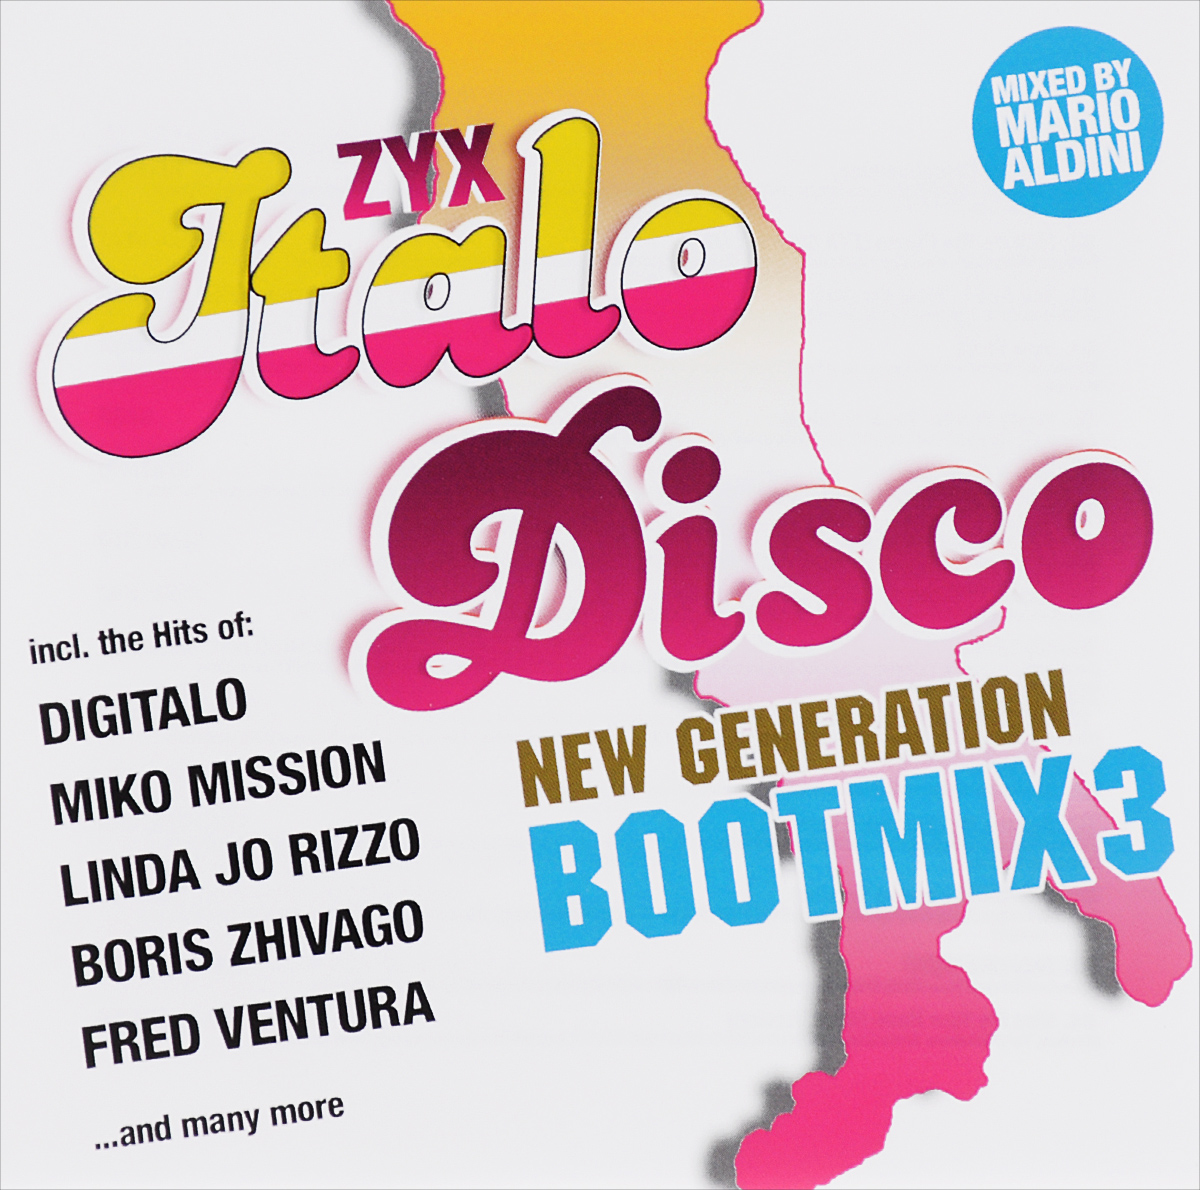 Zyx Italo Disco New Generation Bootmix 3